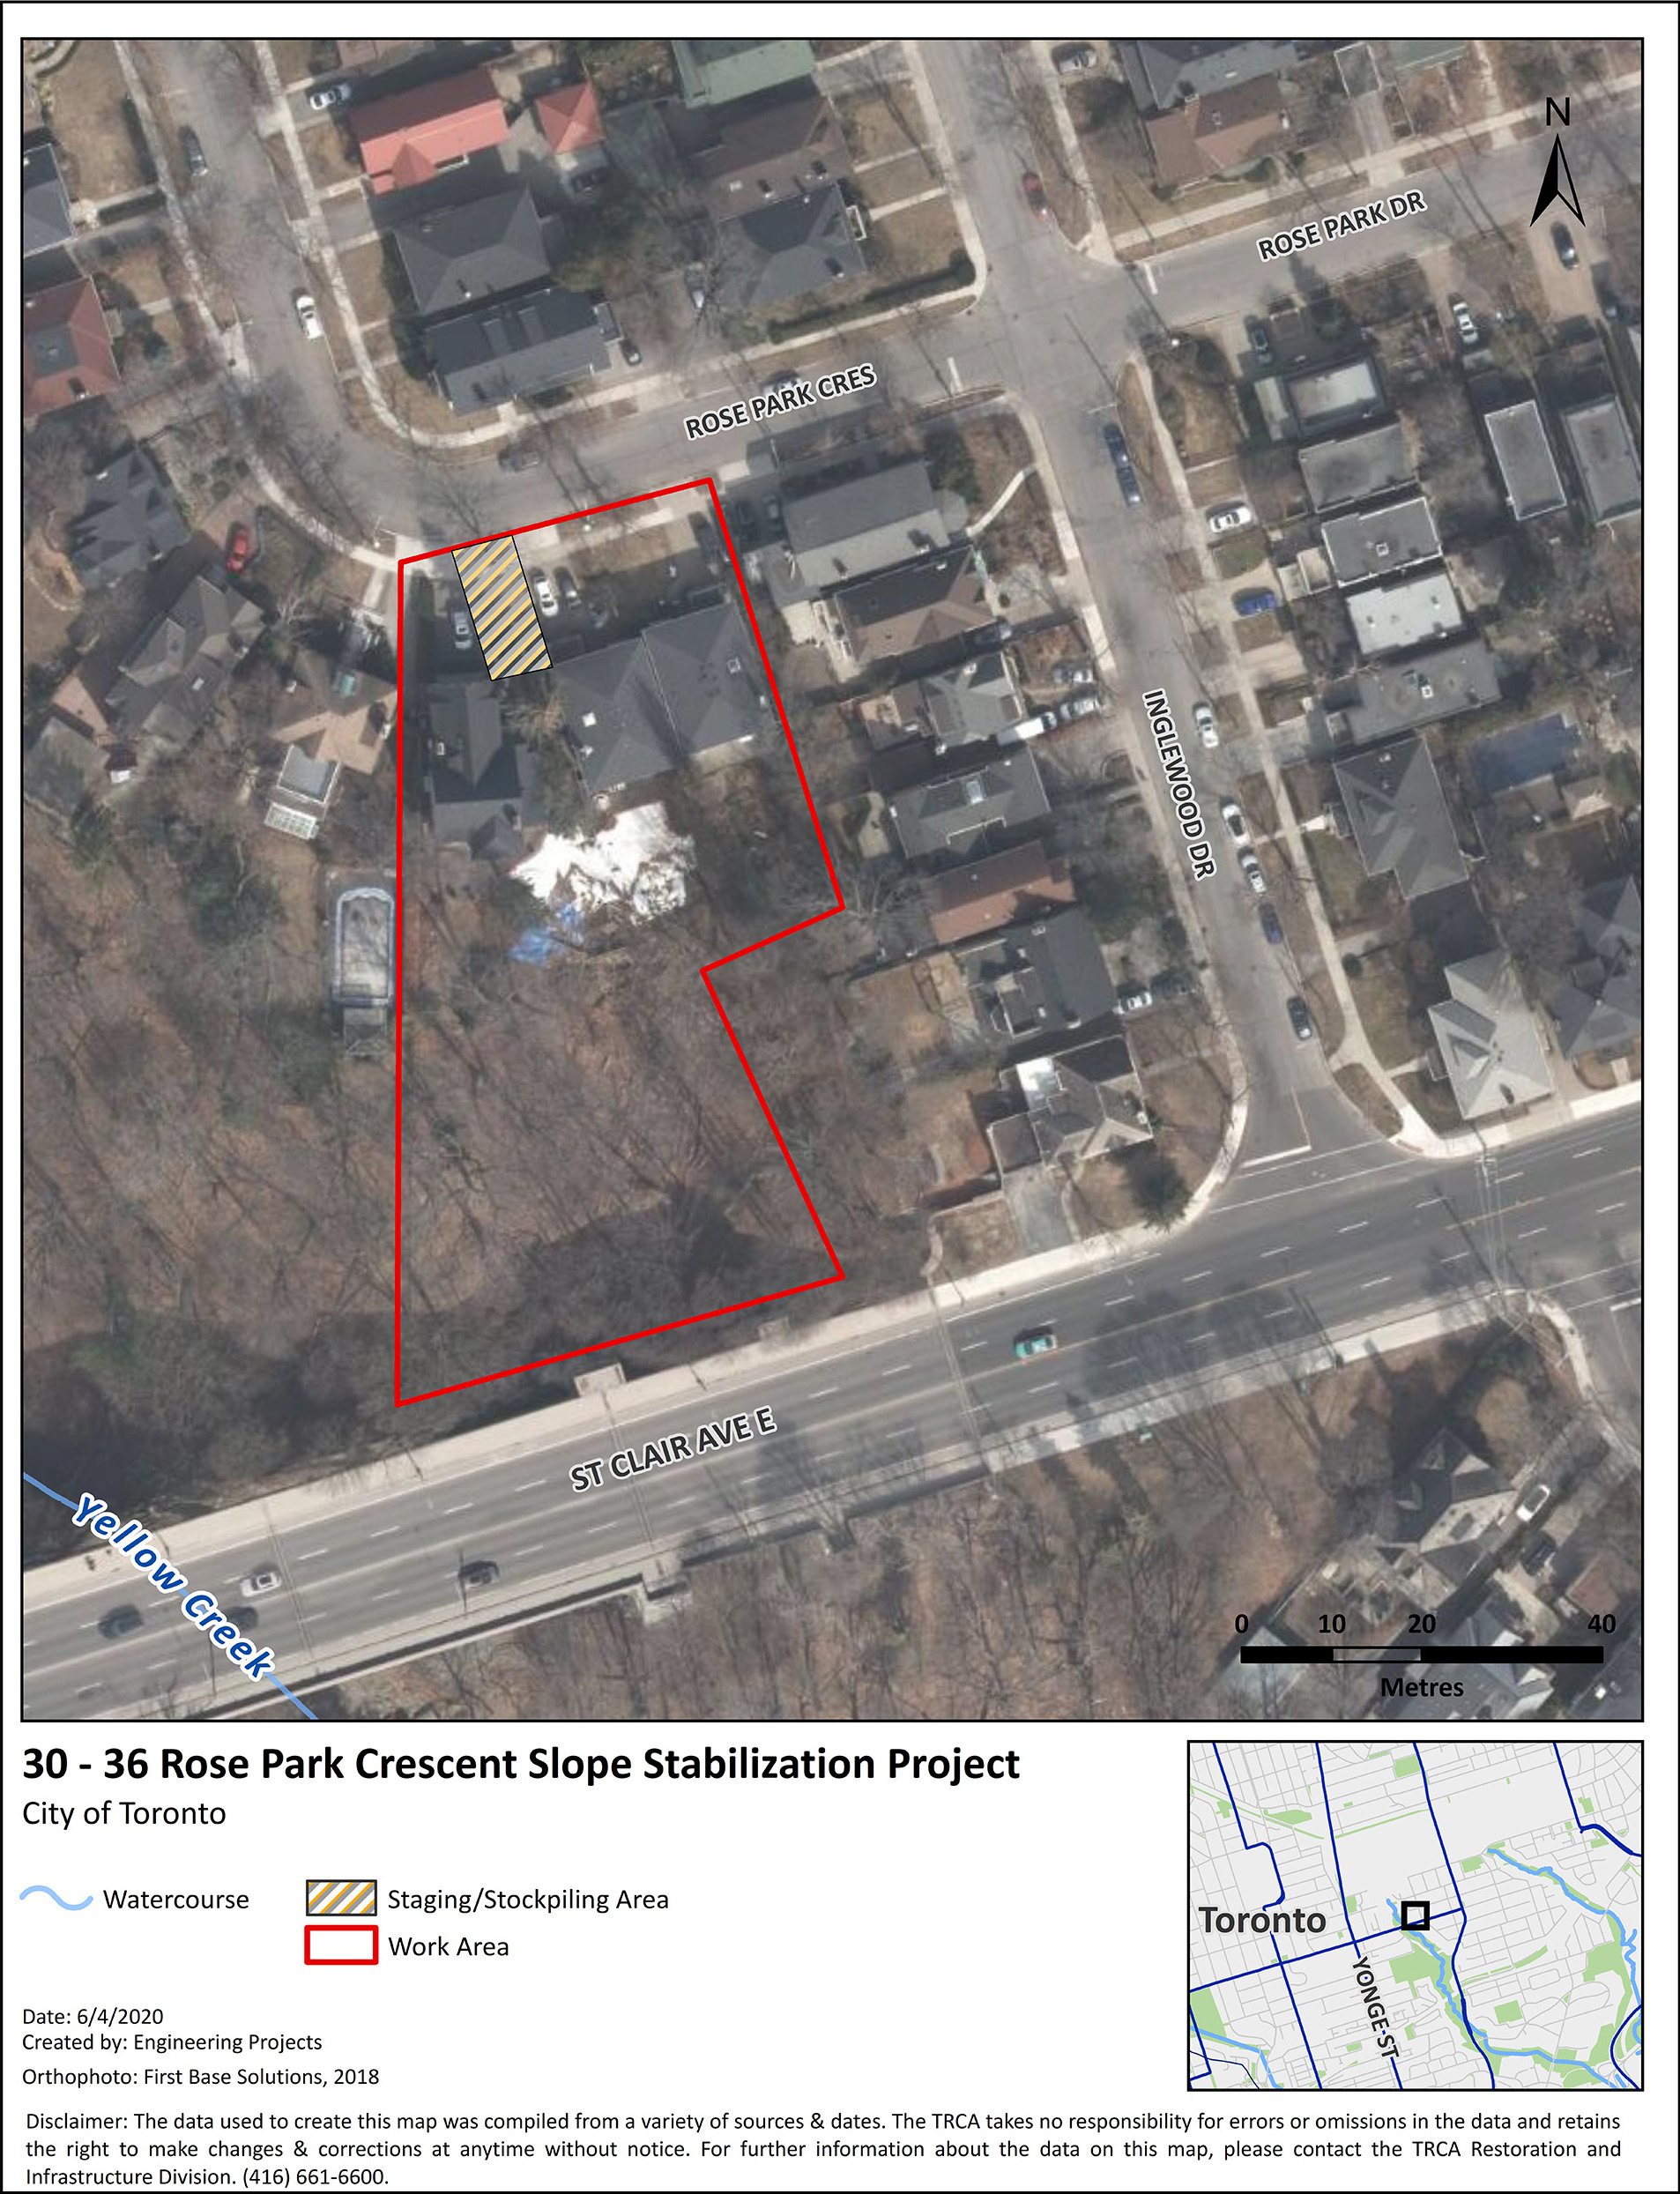 30-36 Rose Park Crescent Slope Stabilization Project Location. The red box outlines the Project area